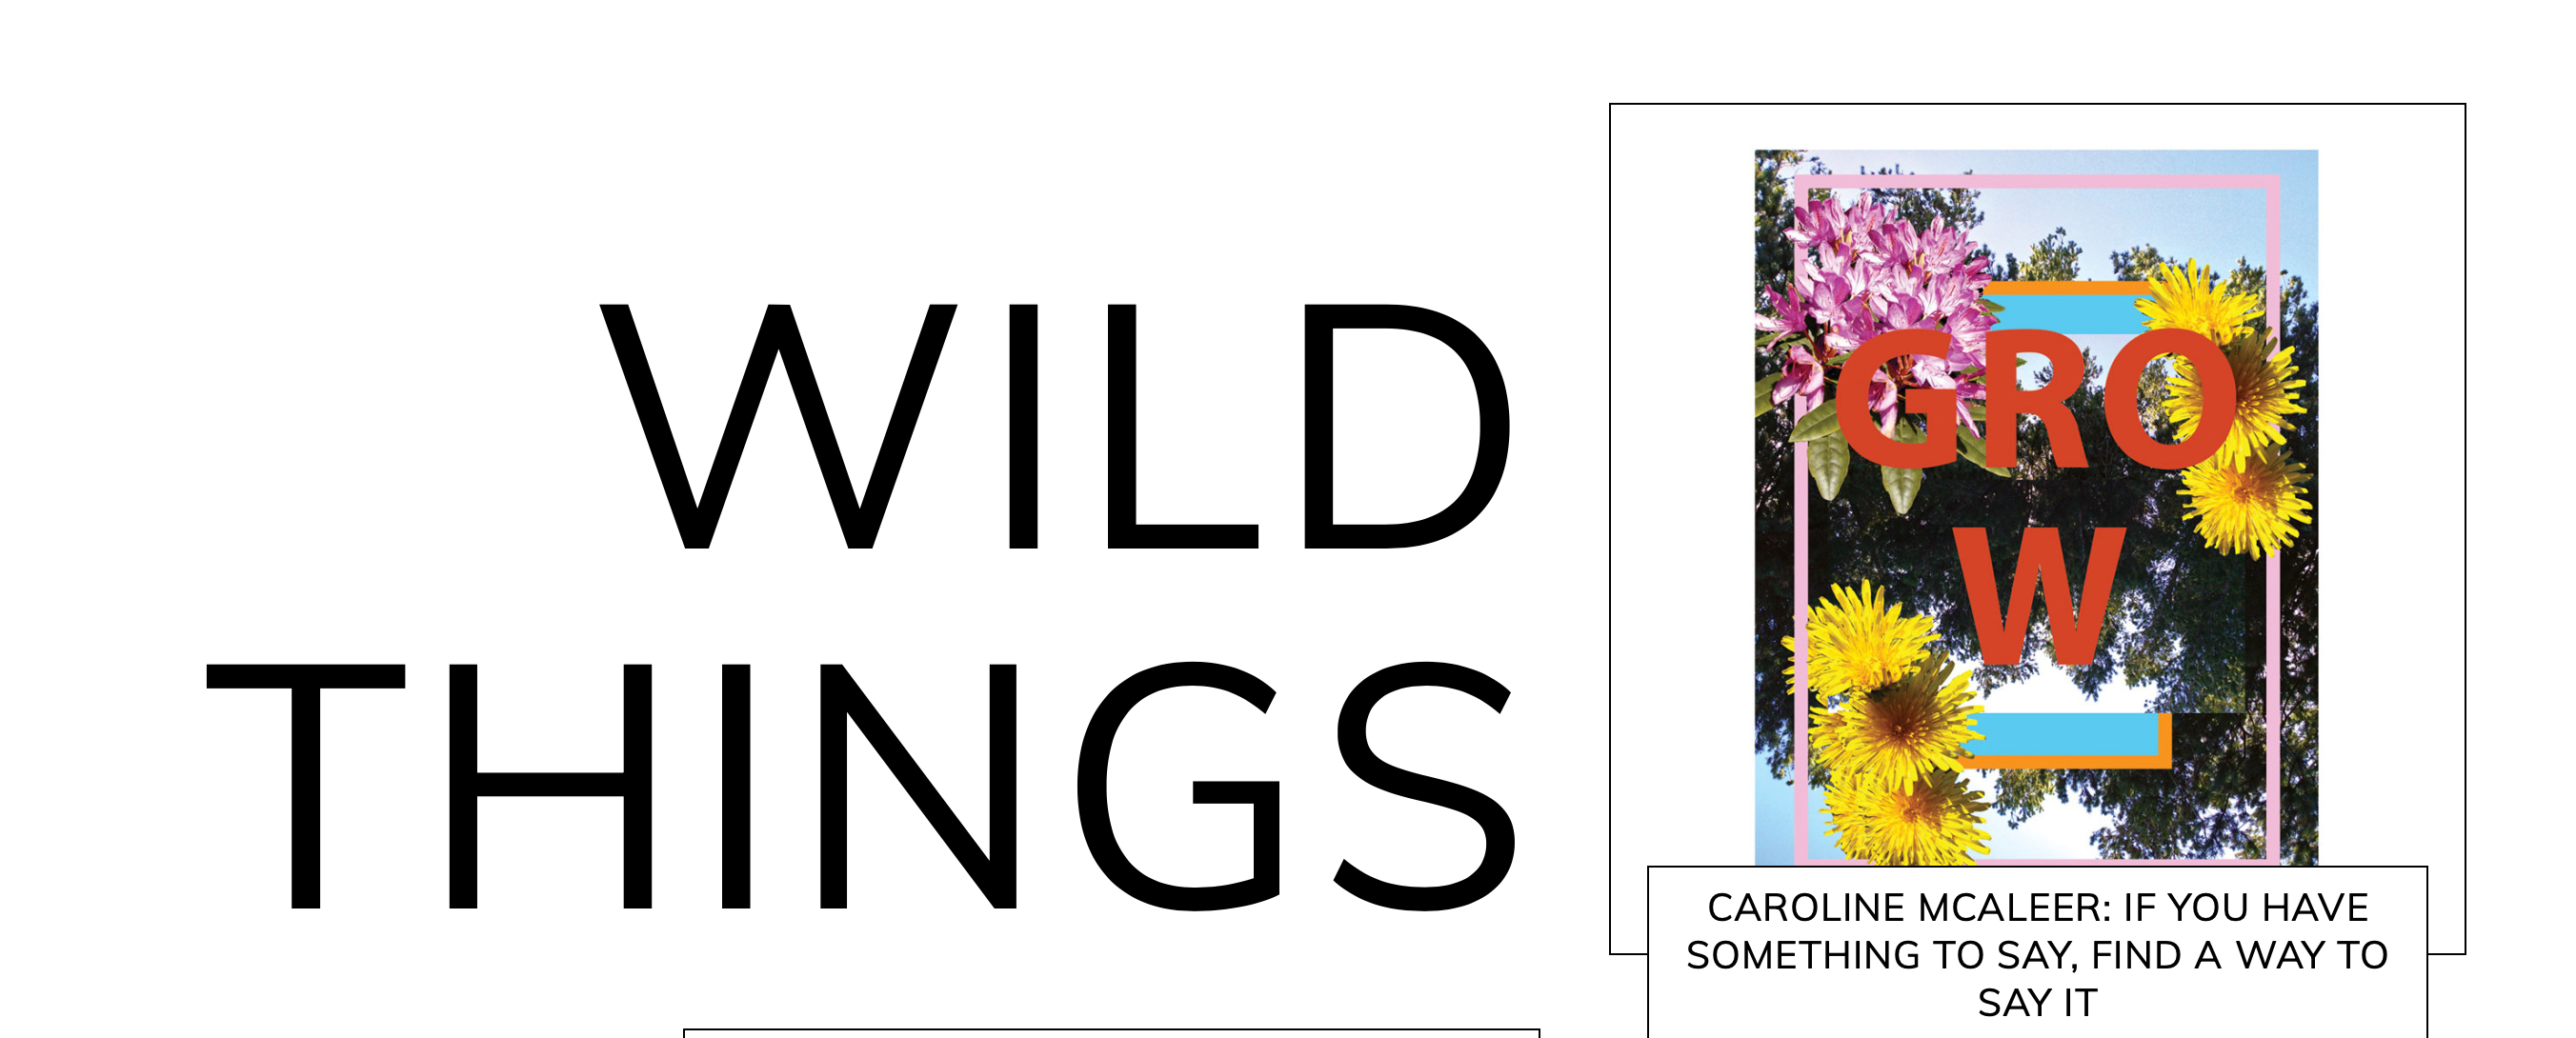 Wild Things Ezine